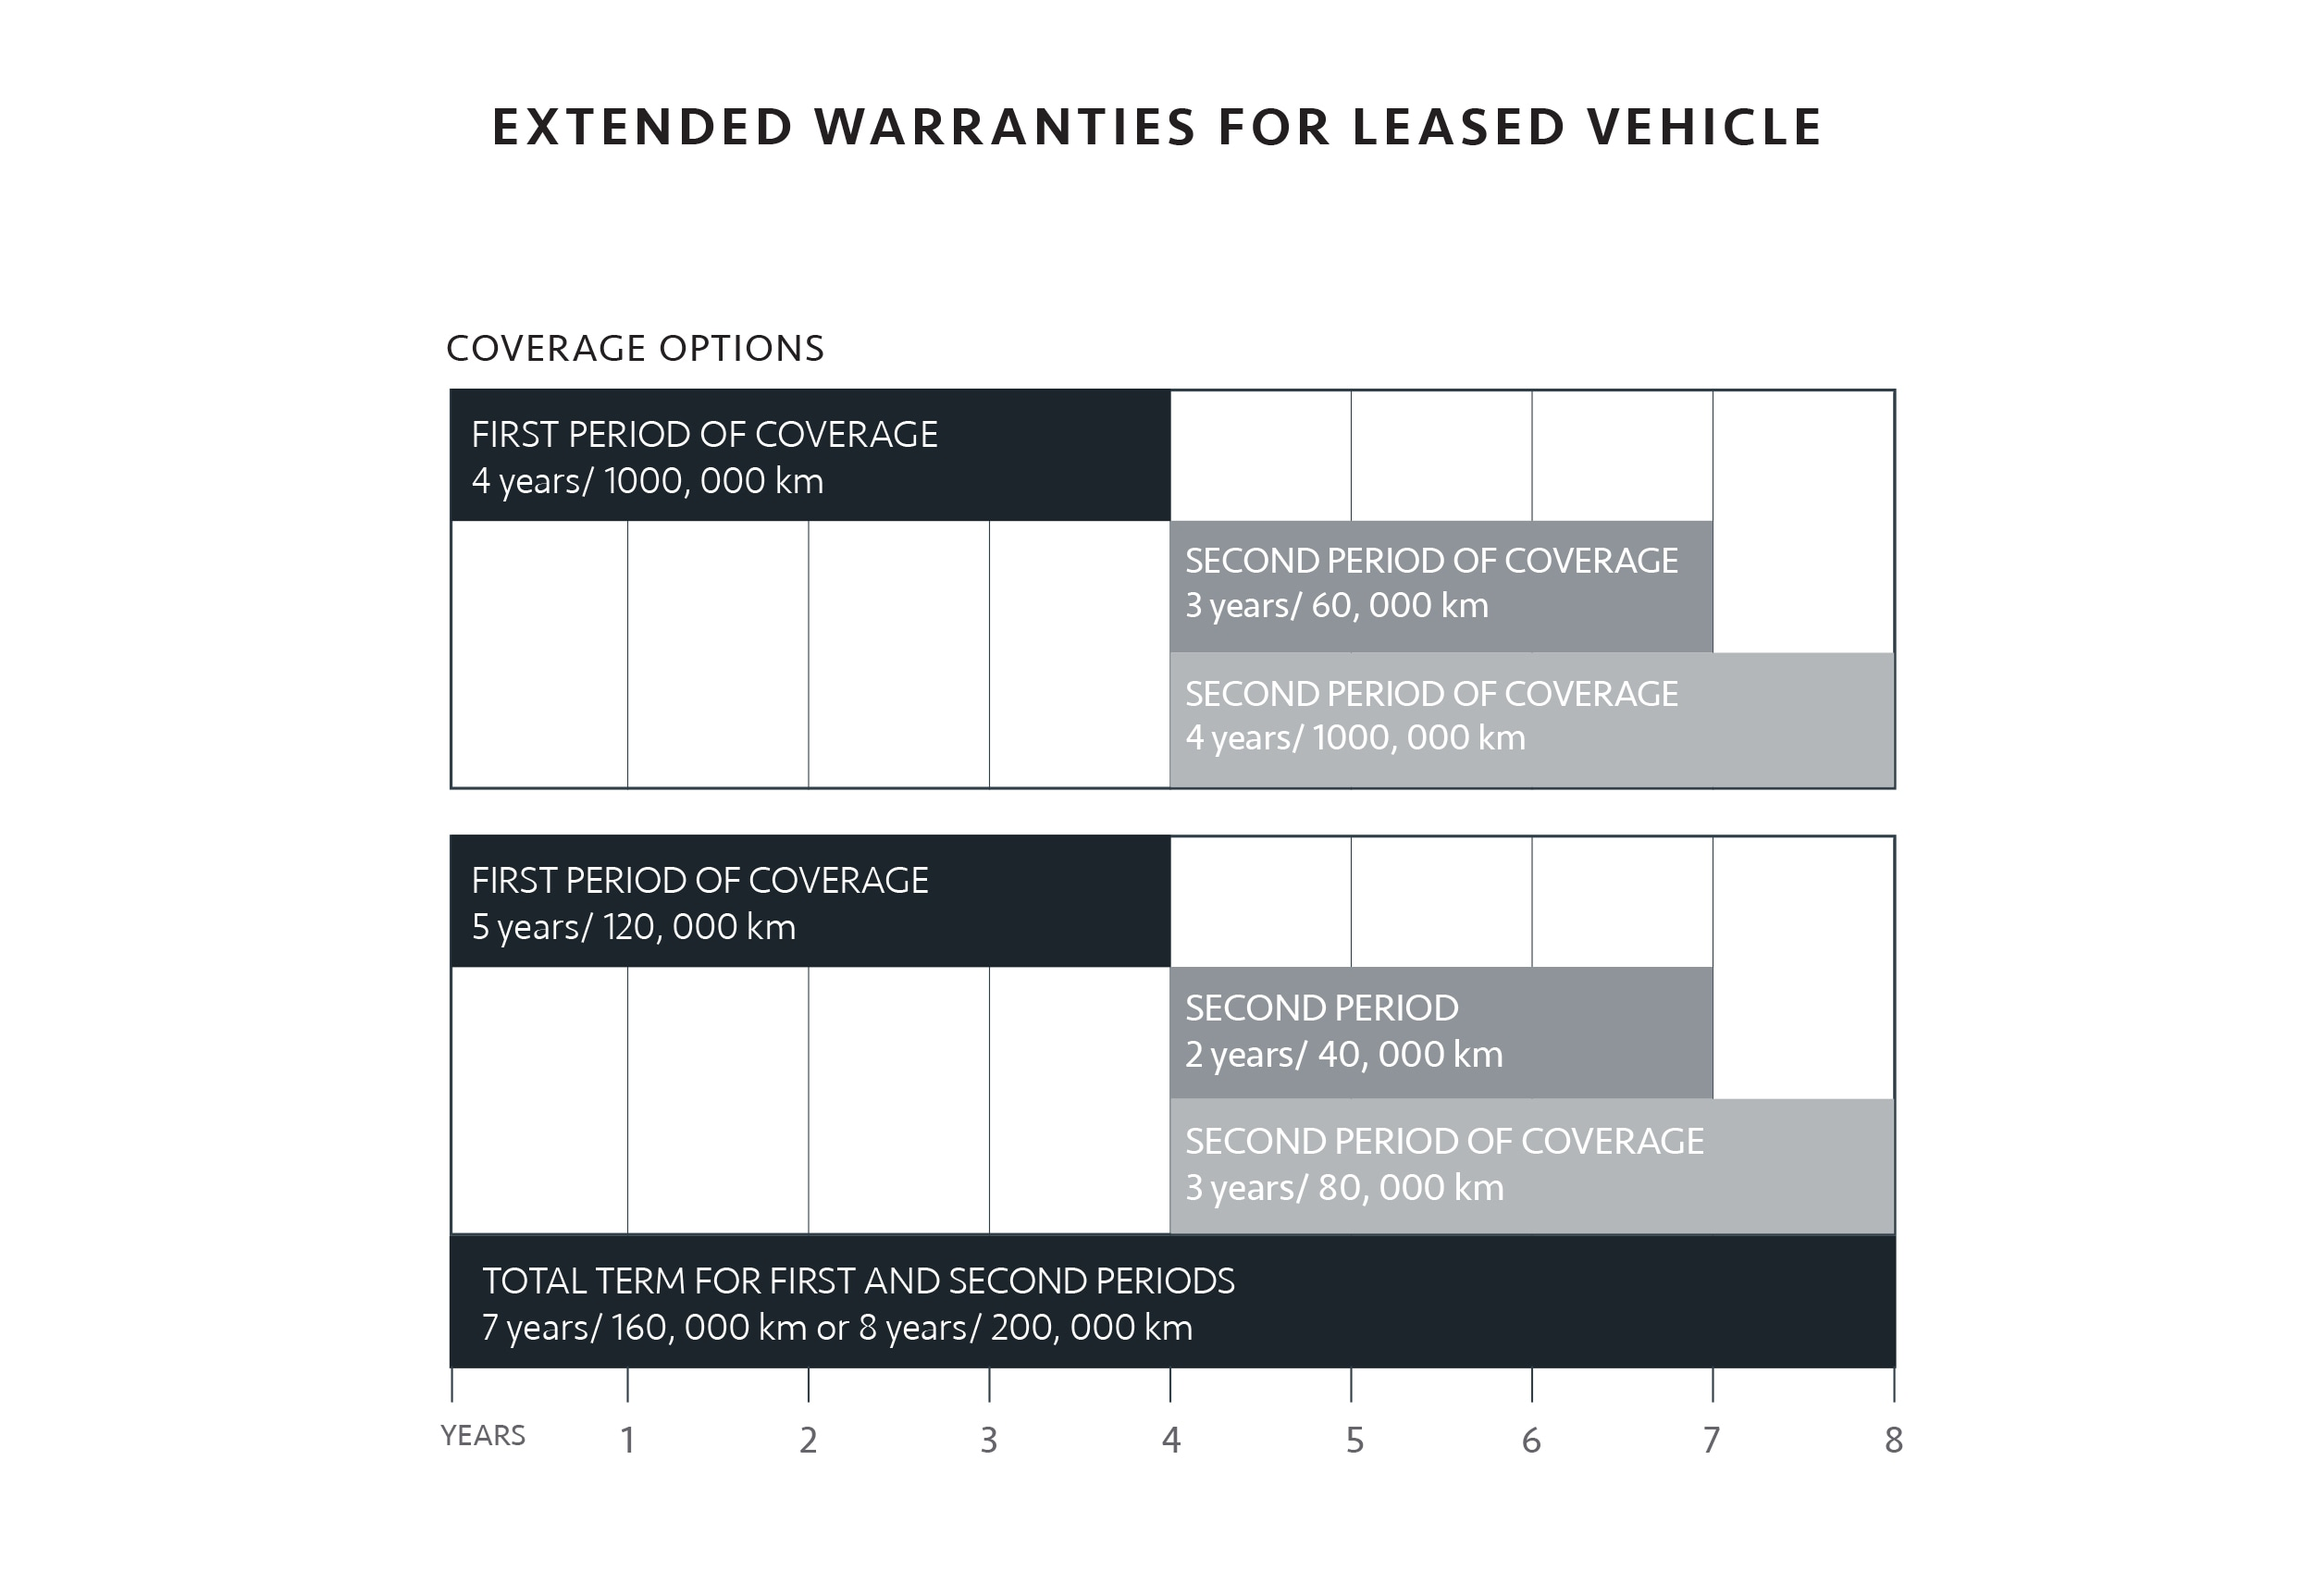 Extended Warranties for Leased Vehicles - Zanchin Auto Group